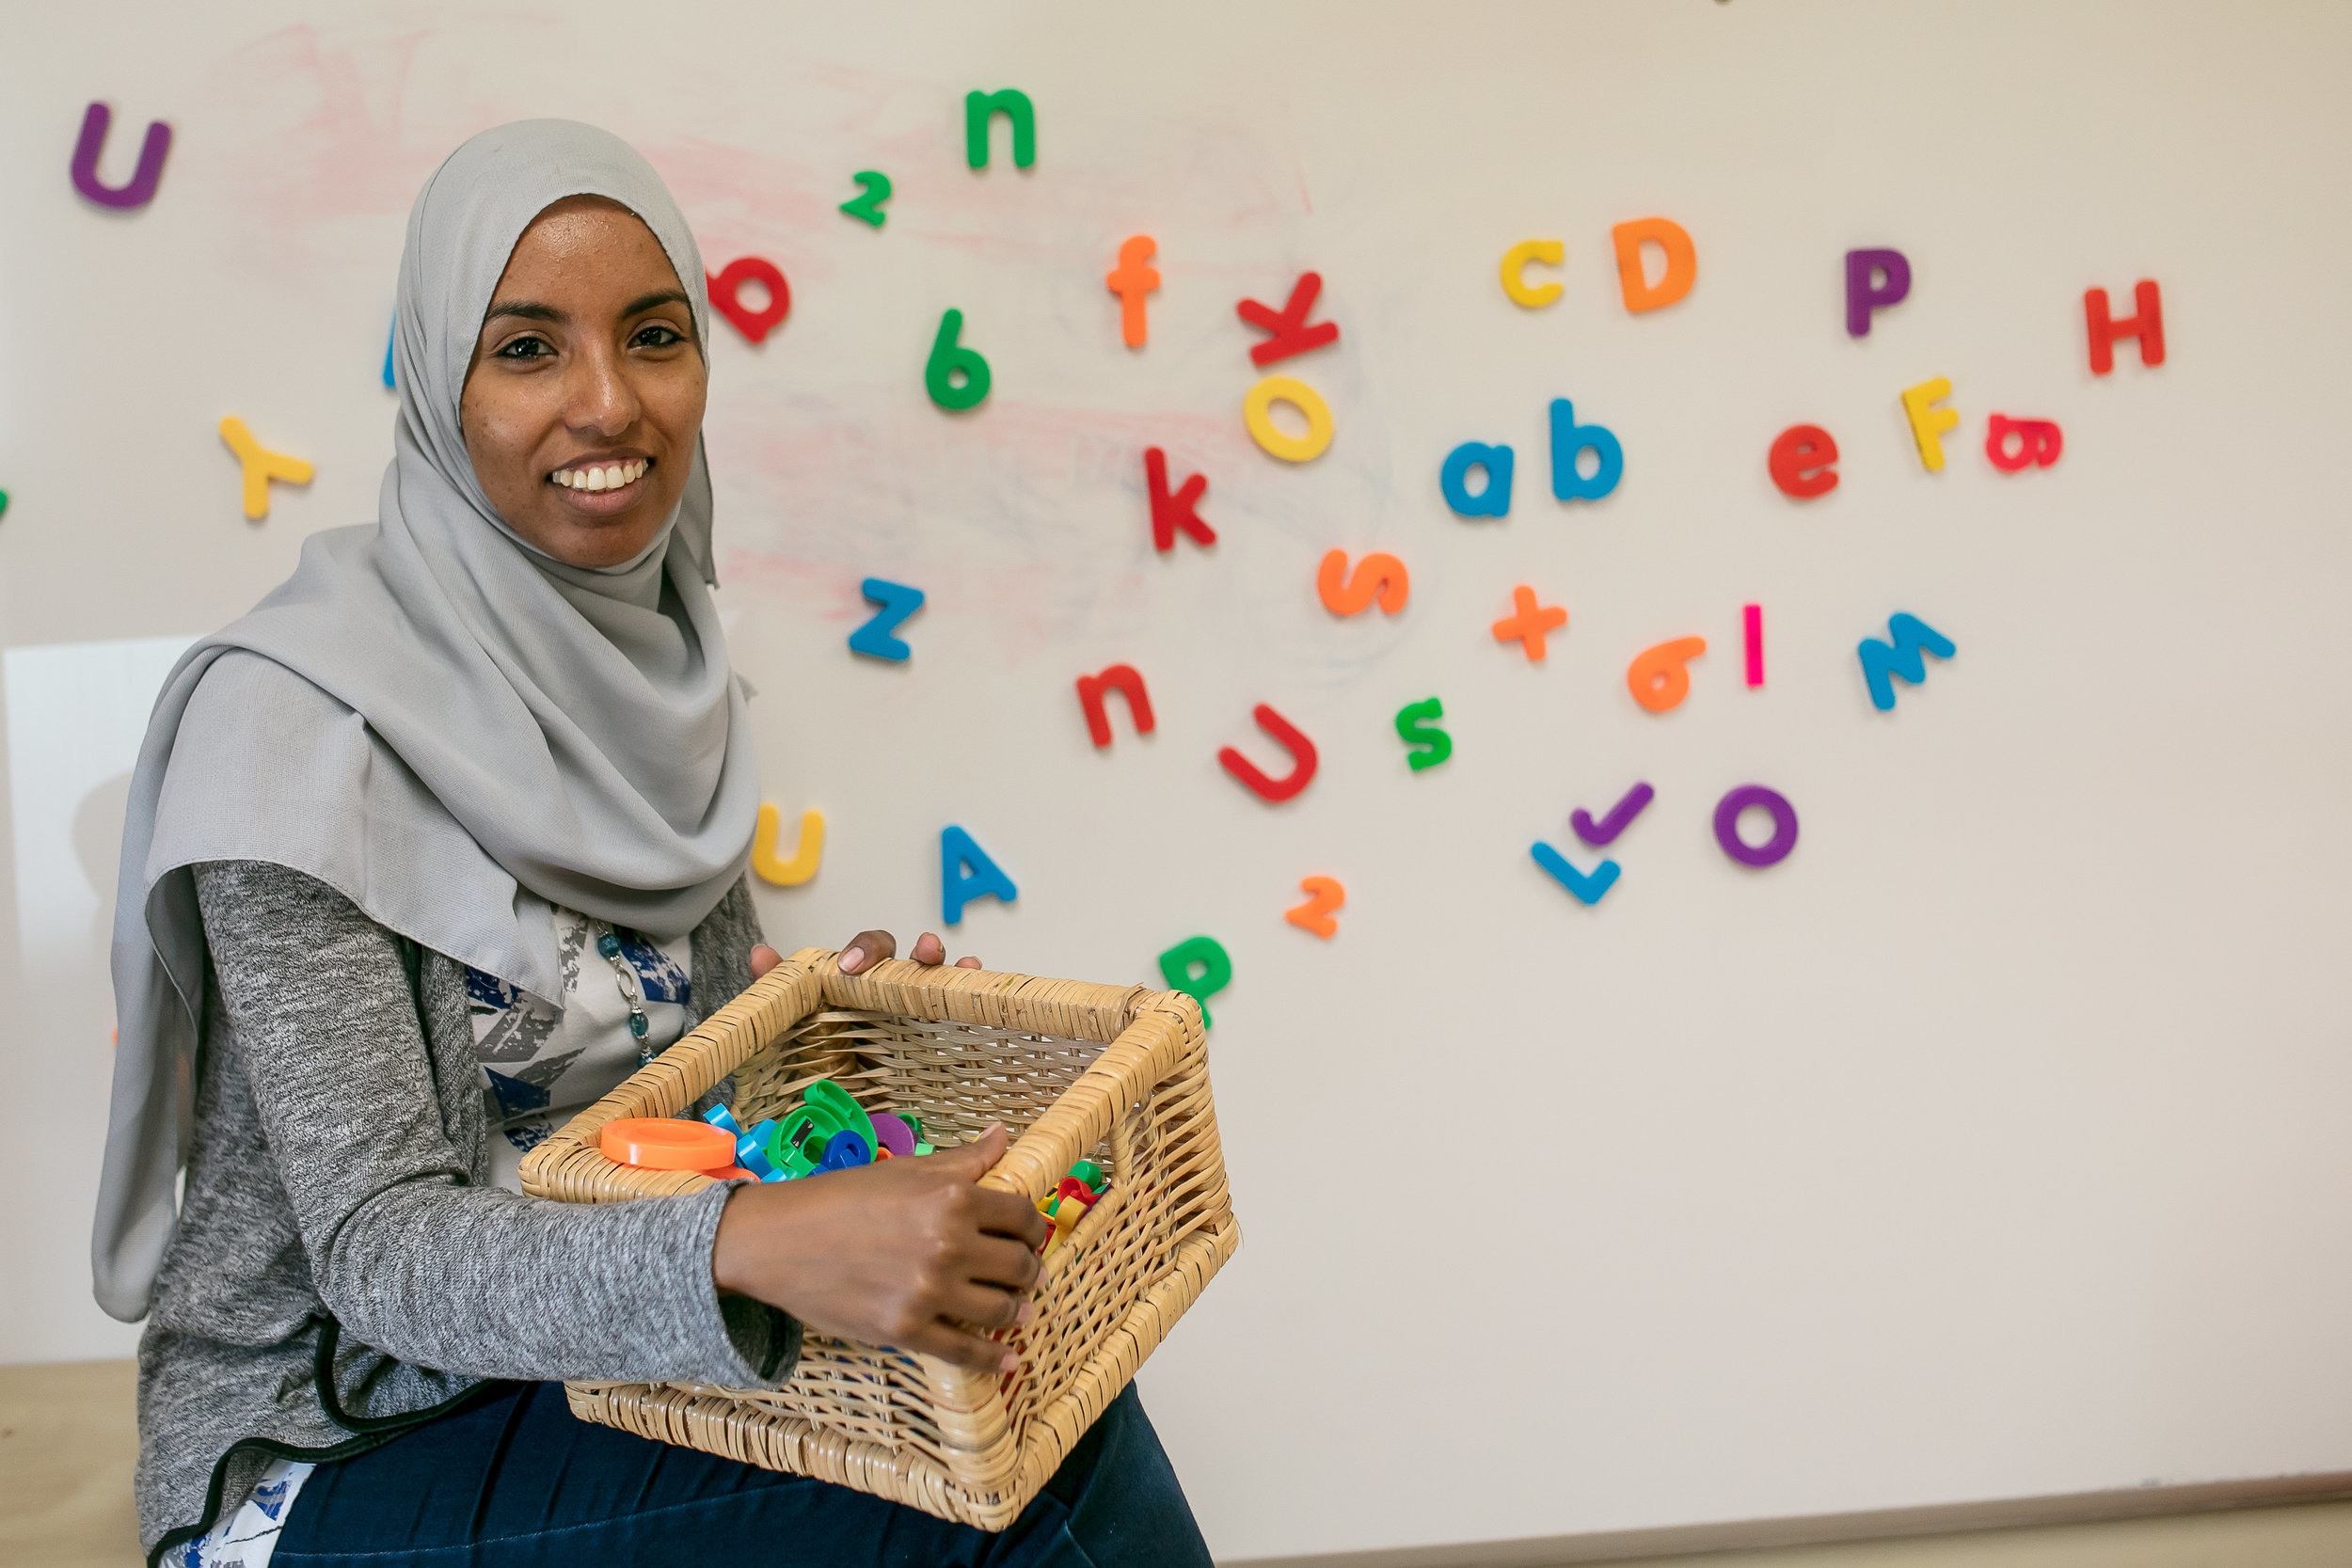 Ekram Ahmed's son Yael overcame his speech delay through guided play at Early Start .